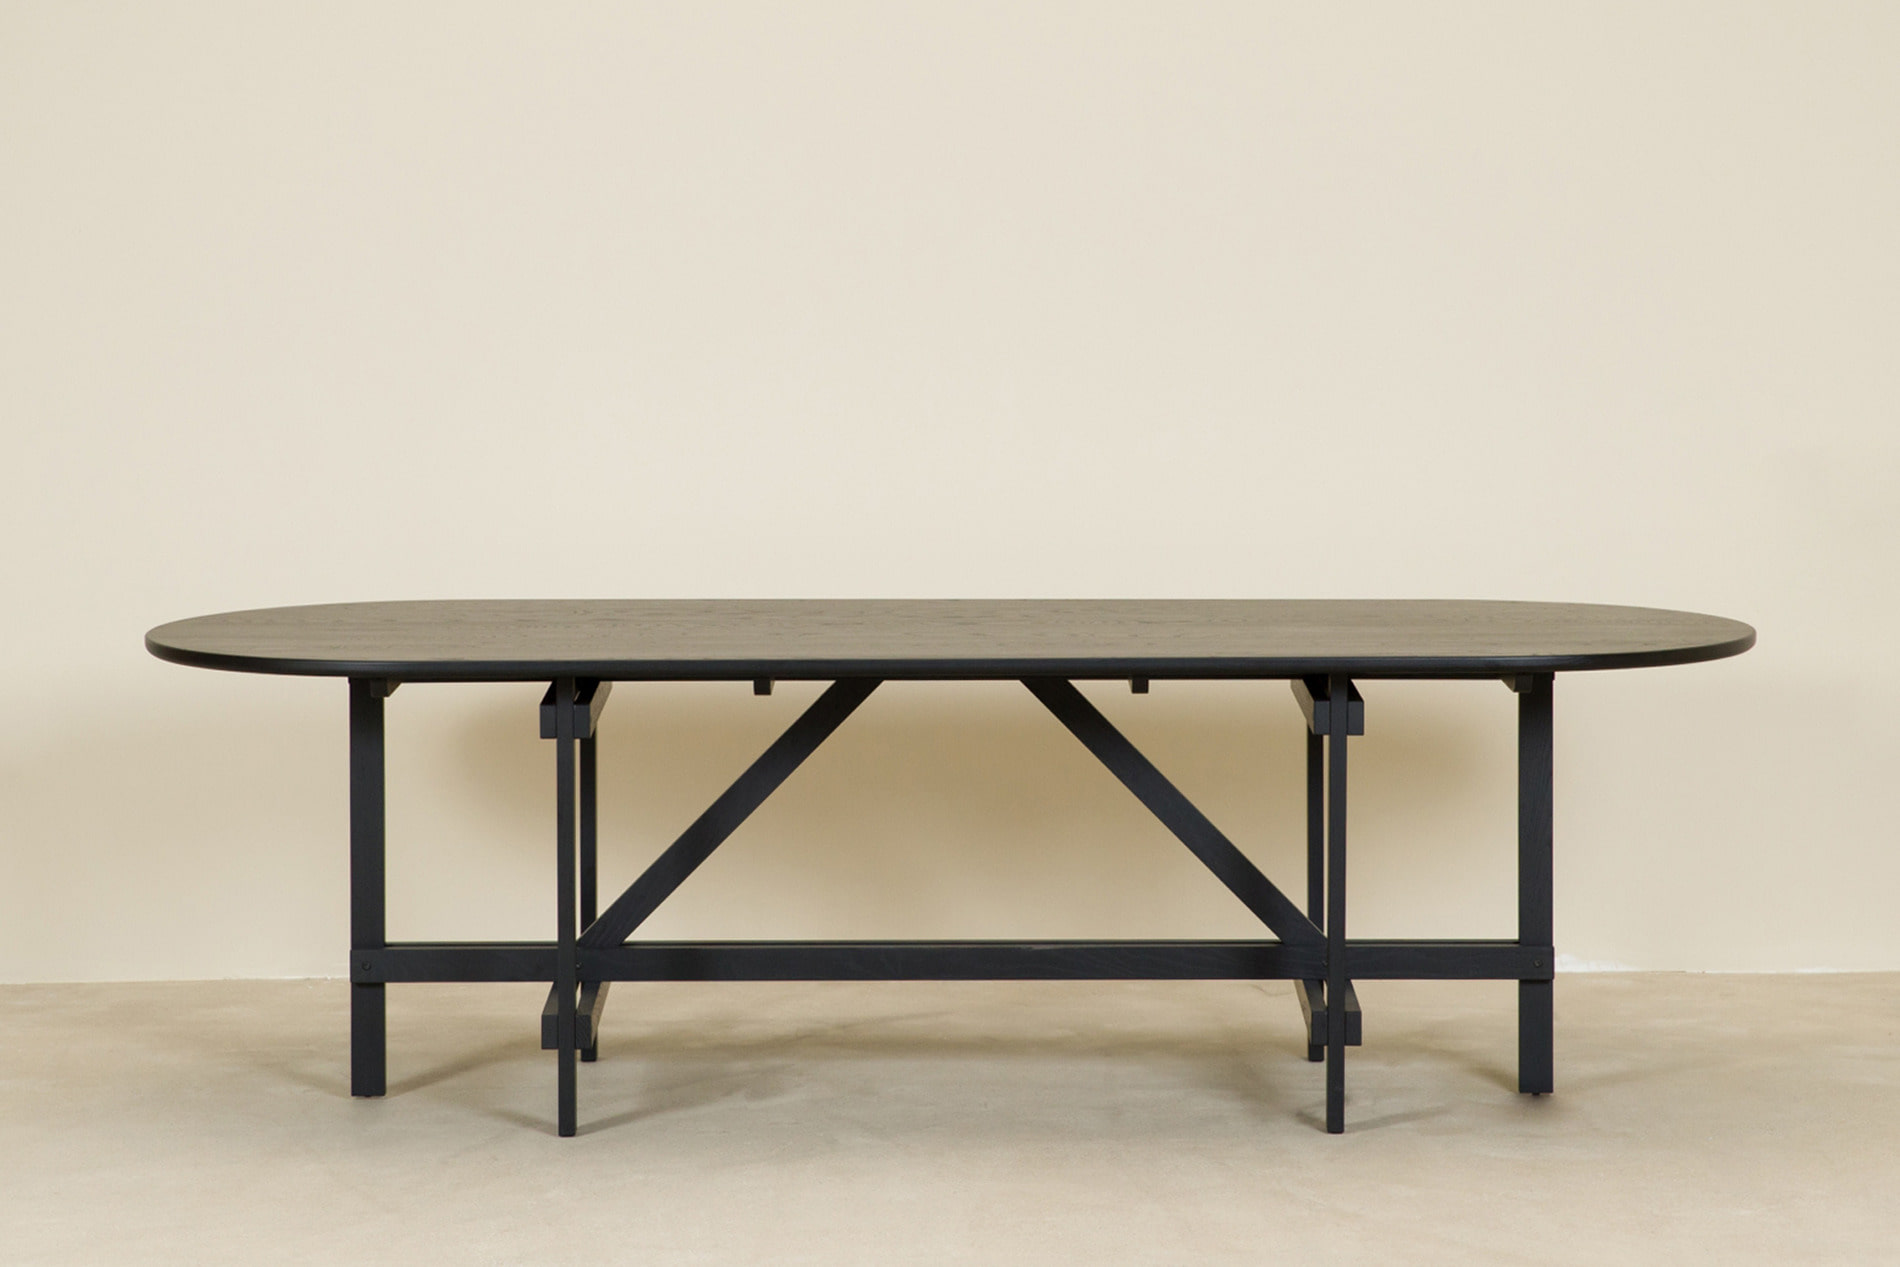 CANE table, black